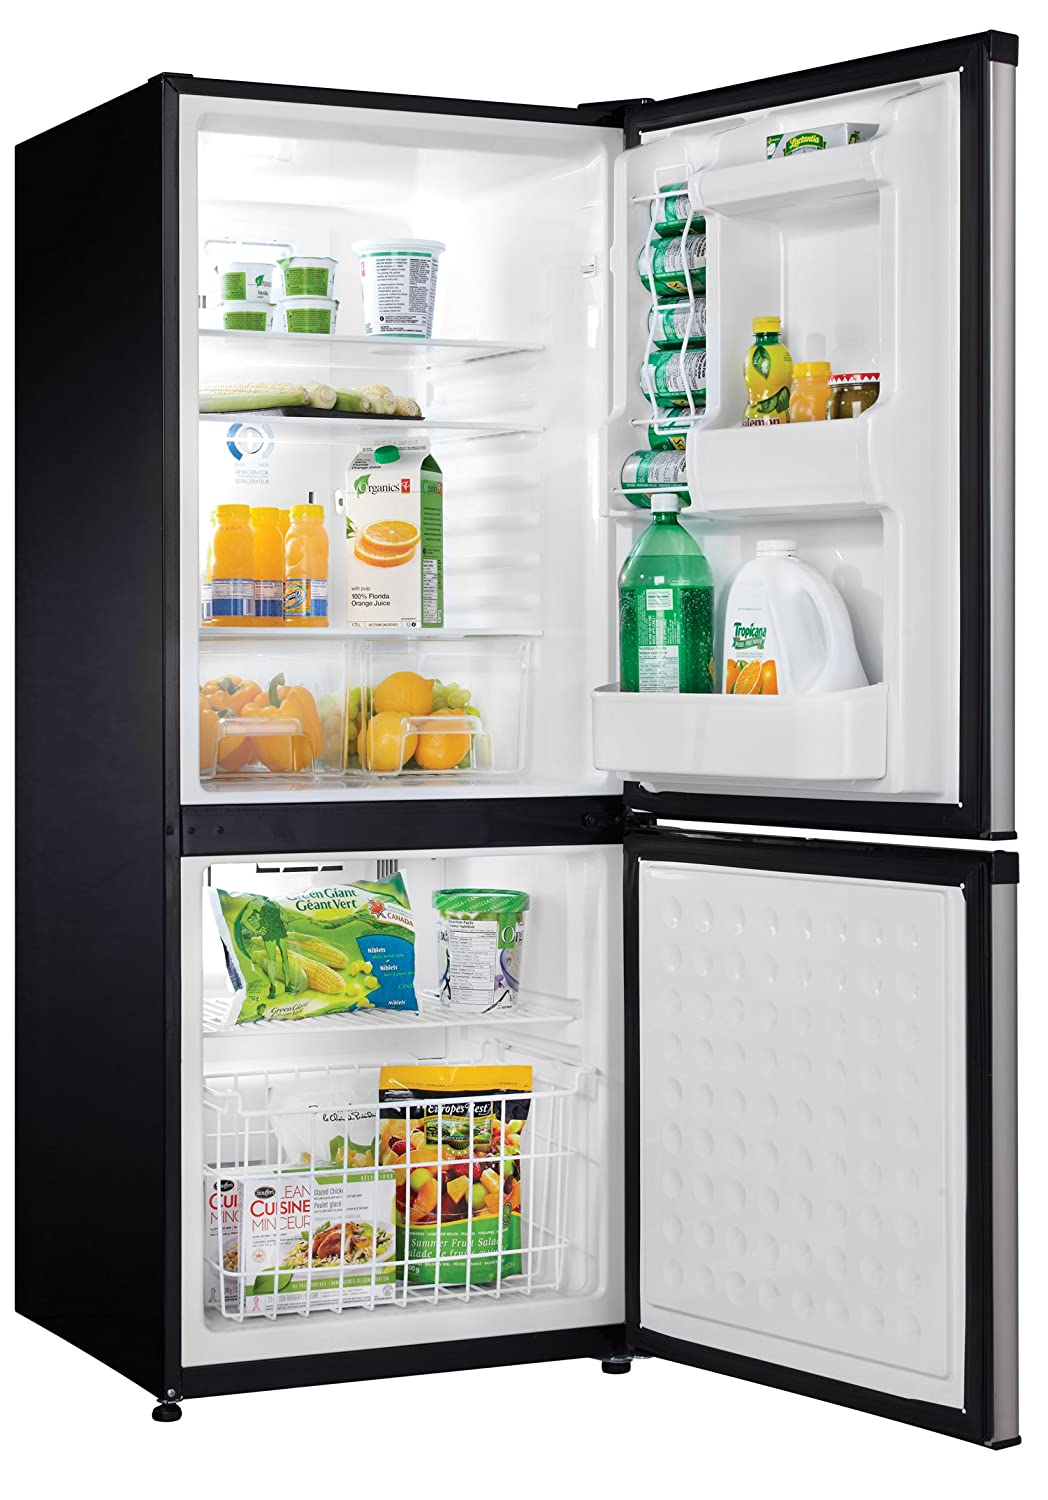 Best Apartment Refrigerator Freezer Photos - Liltigertoo.com ...